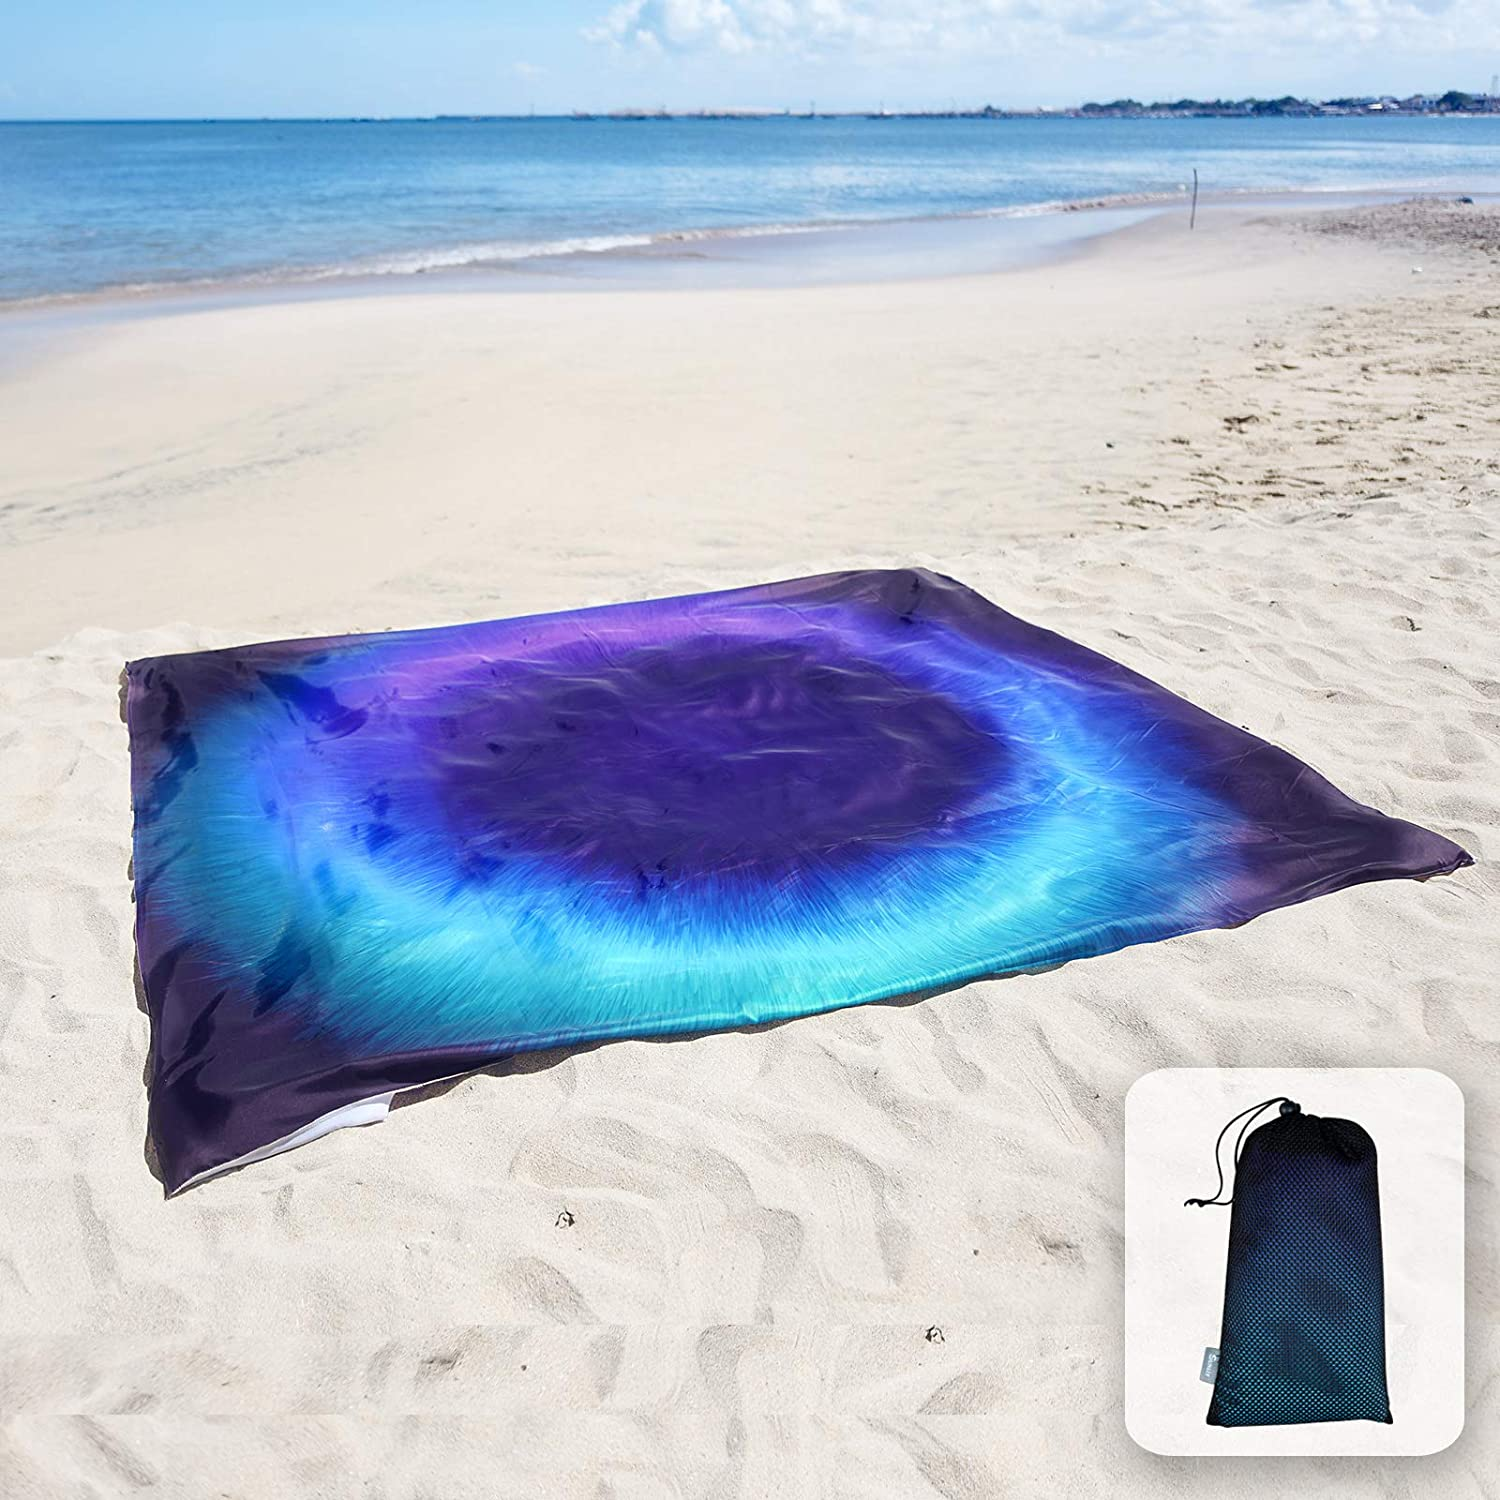 Sunlit Silky Soft Sand Proof Beach Blanket Sand Proof Mat with Corner Pockets and Mesh Bag 6' x 7' for Beach Party, Travel, Camping and Outdoor Music Festival, Dark Blue Ring, Black Hole